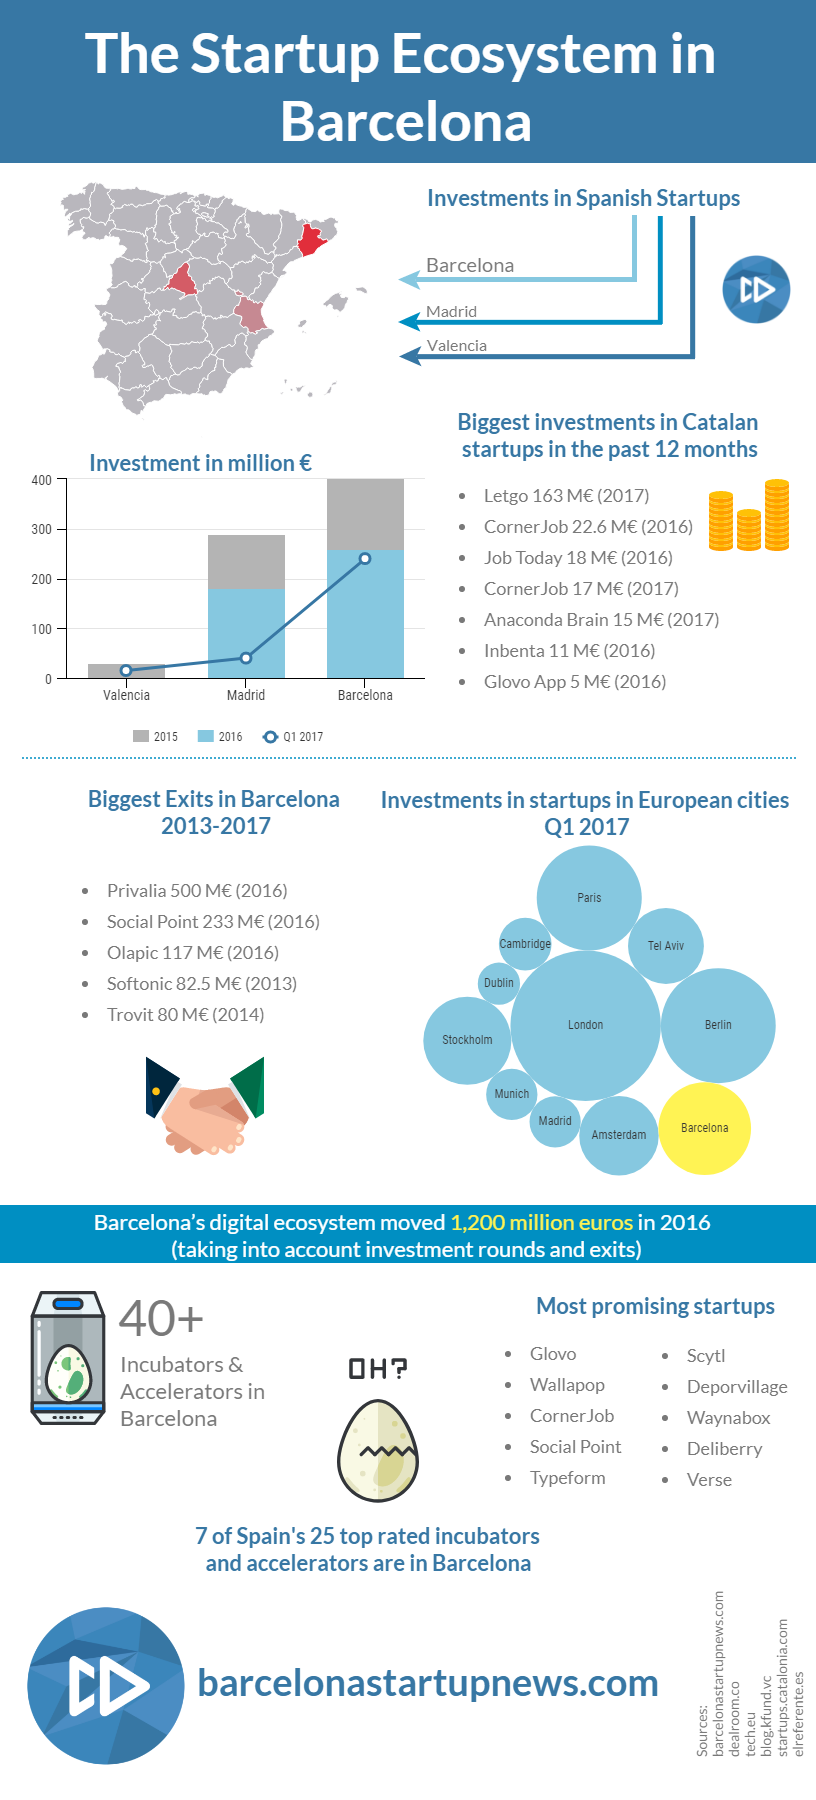 The Startup Ecosystem in Barcelona - Investments, Exits, Incubators and Accelerators, and Most Promising Tech Companies - Infographic